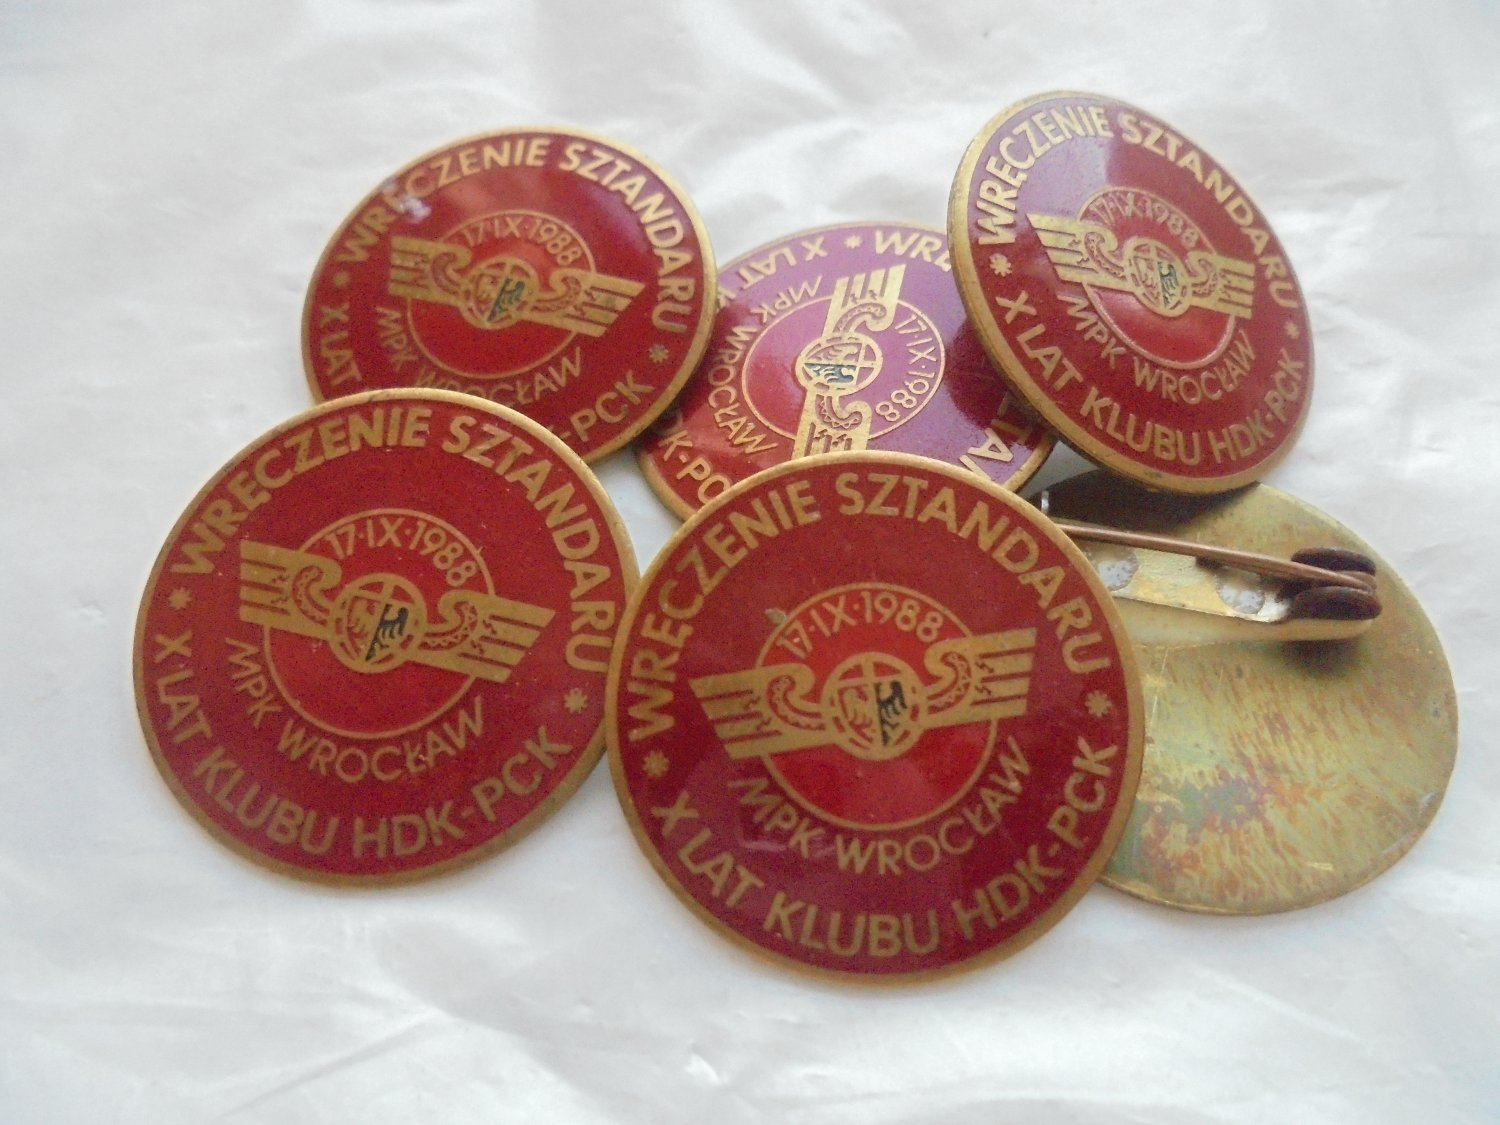 POLISH MILITARY PIN congress of 1988 Poland Original enameled in red color